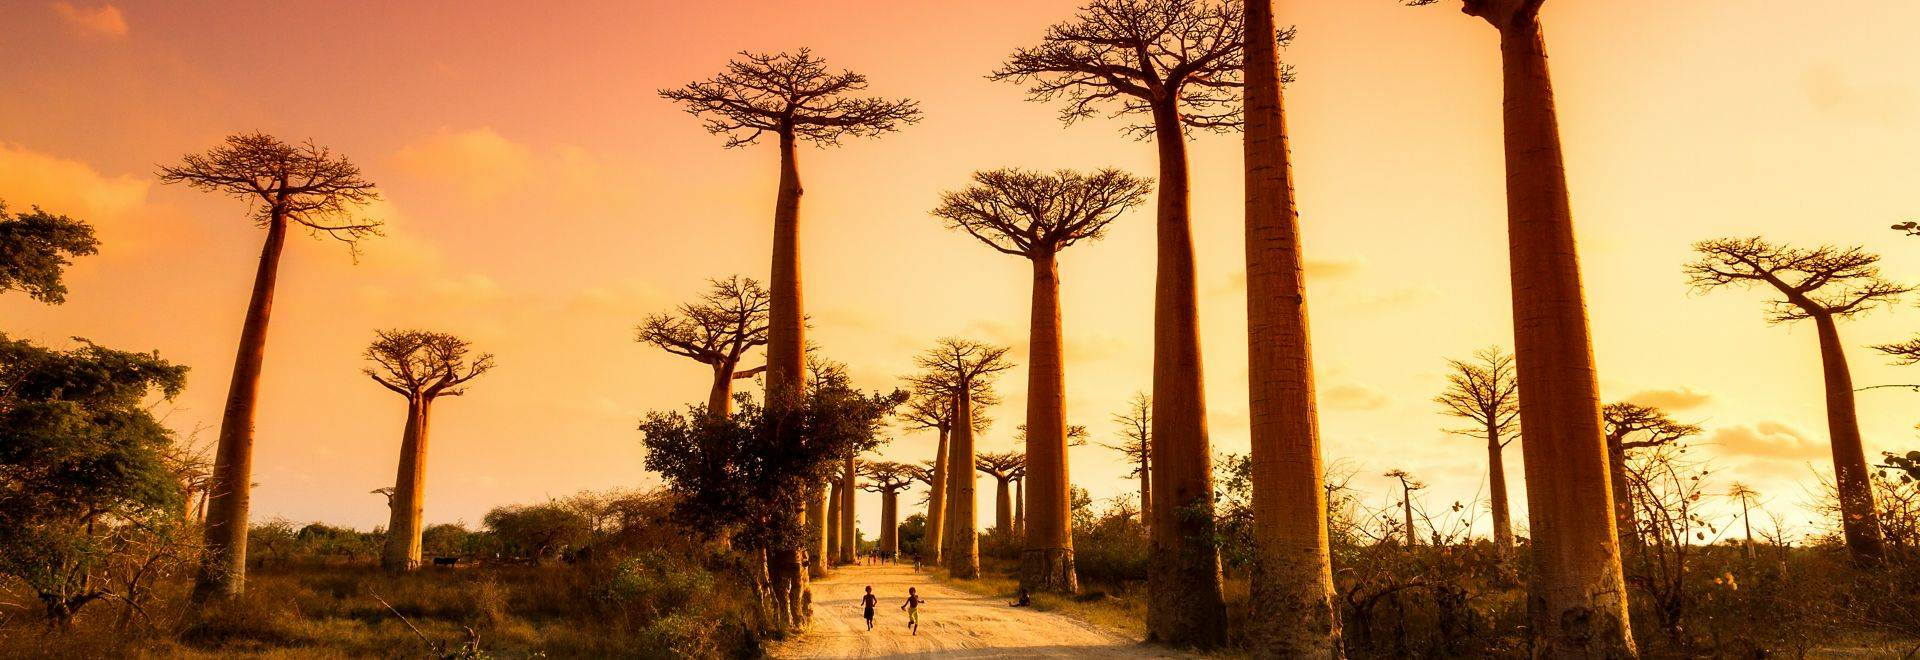 Avenue Of Baobabs Shutterstock 259688654